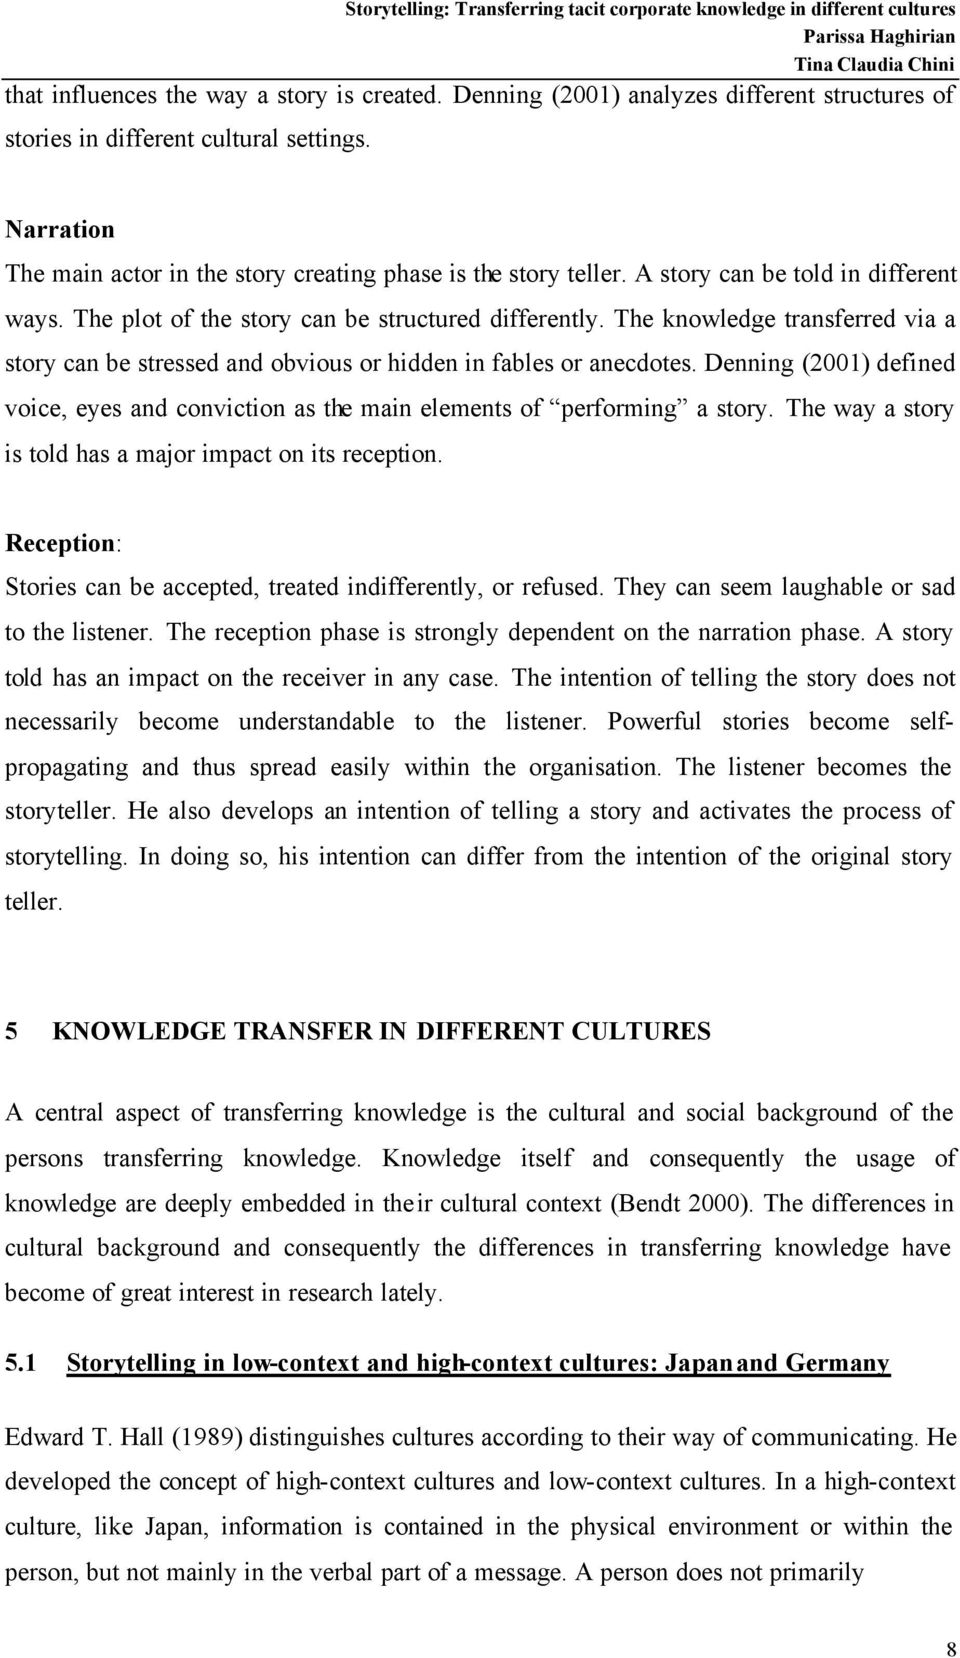 The knowledge transferred via a story can be stressed and obvious or hidden in fables or anecdotes. Denning (2001) defined voice, eyes and conviction as the main elements of performing a story.